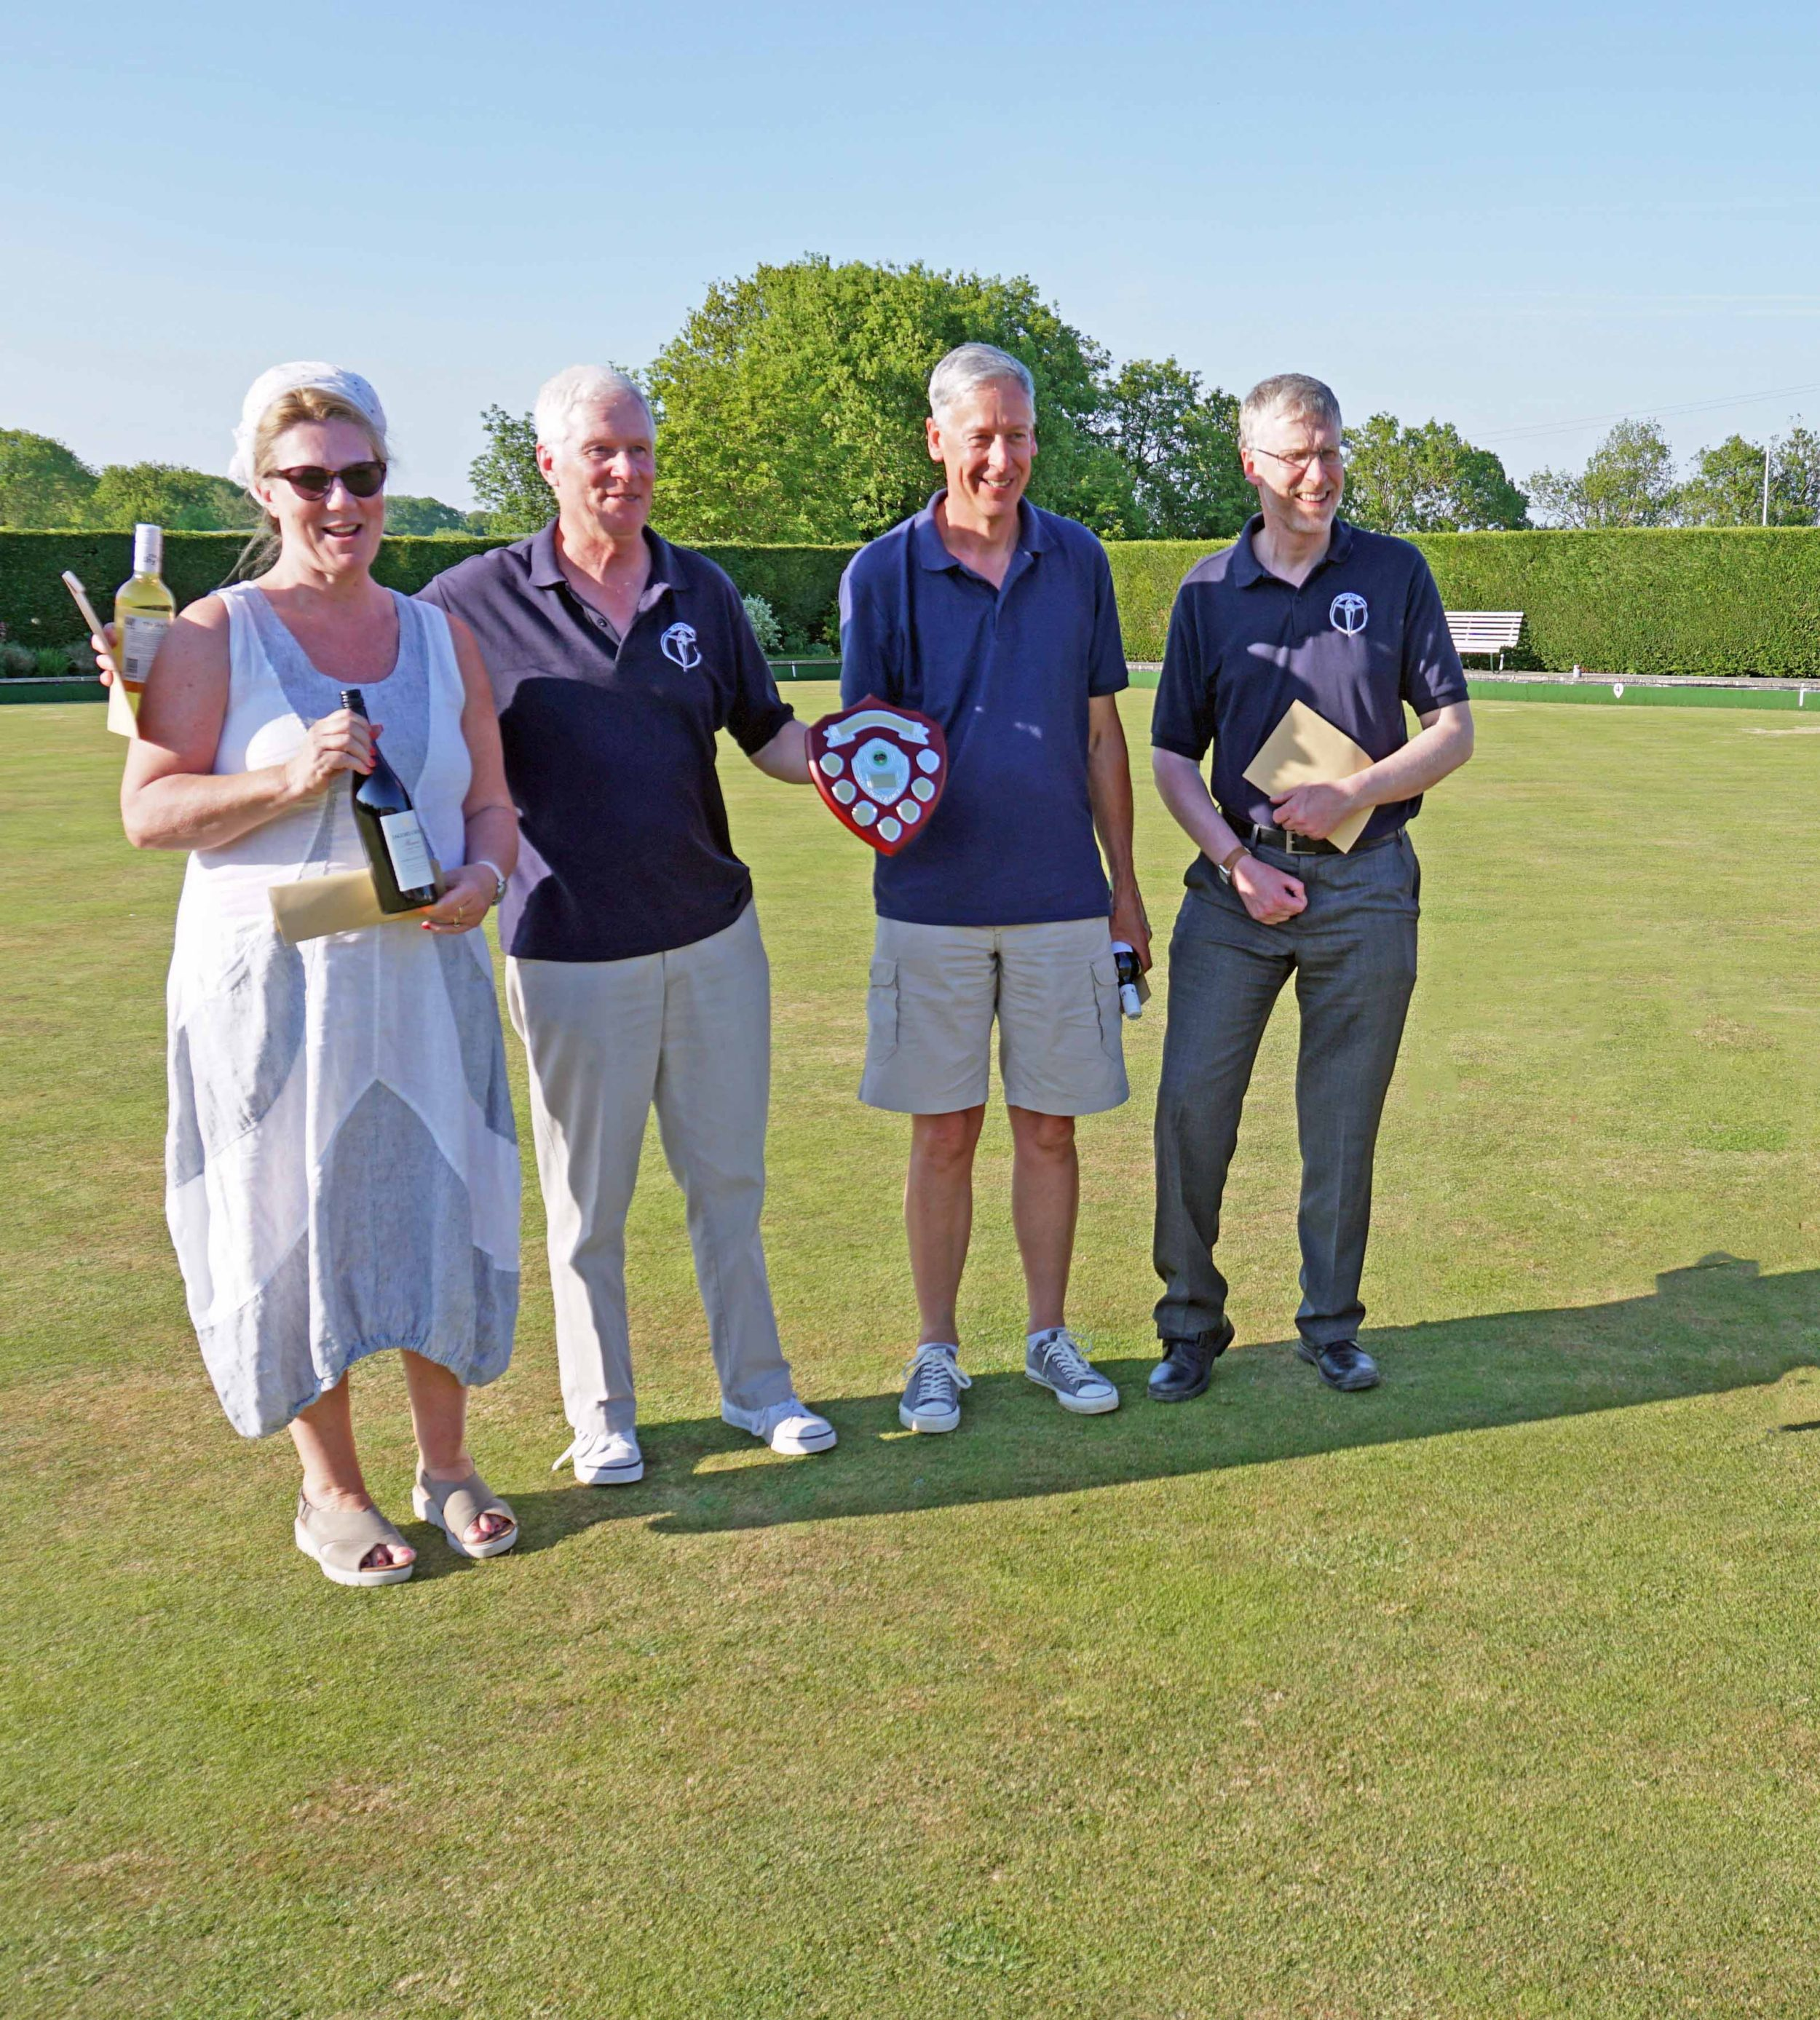 Oundle Town Sports Clubs V Oundle Bowling Club